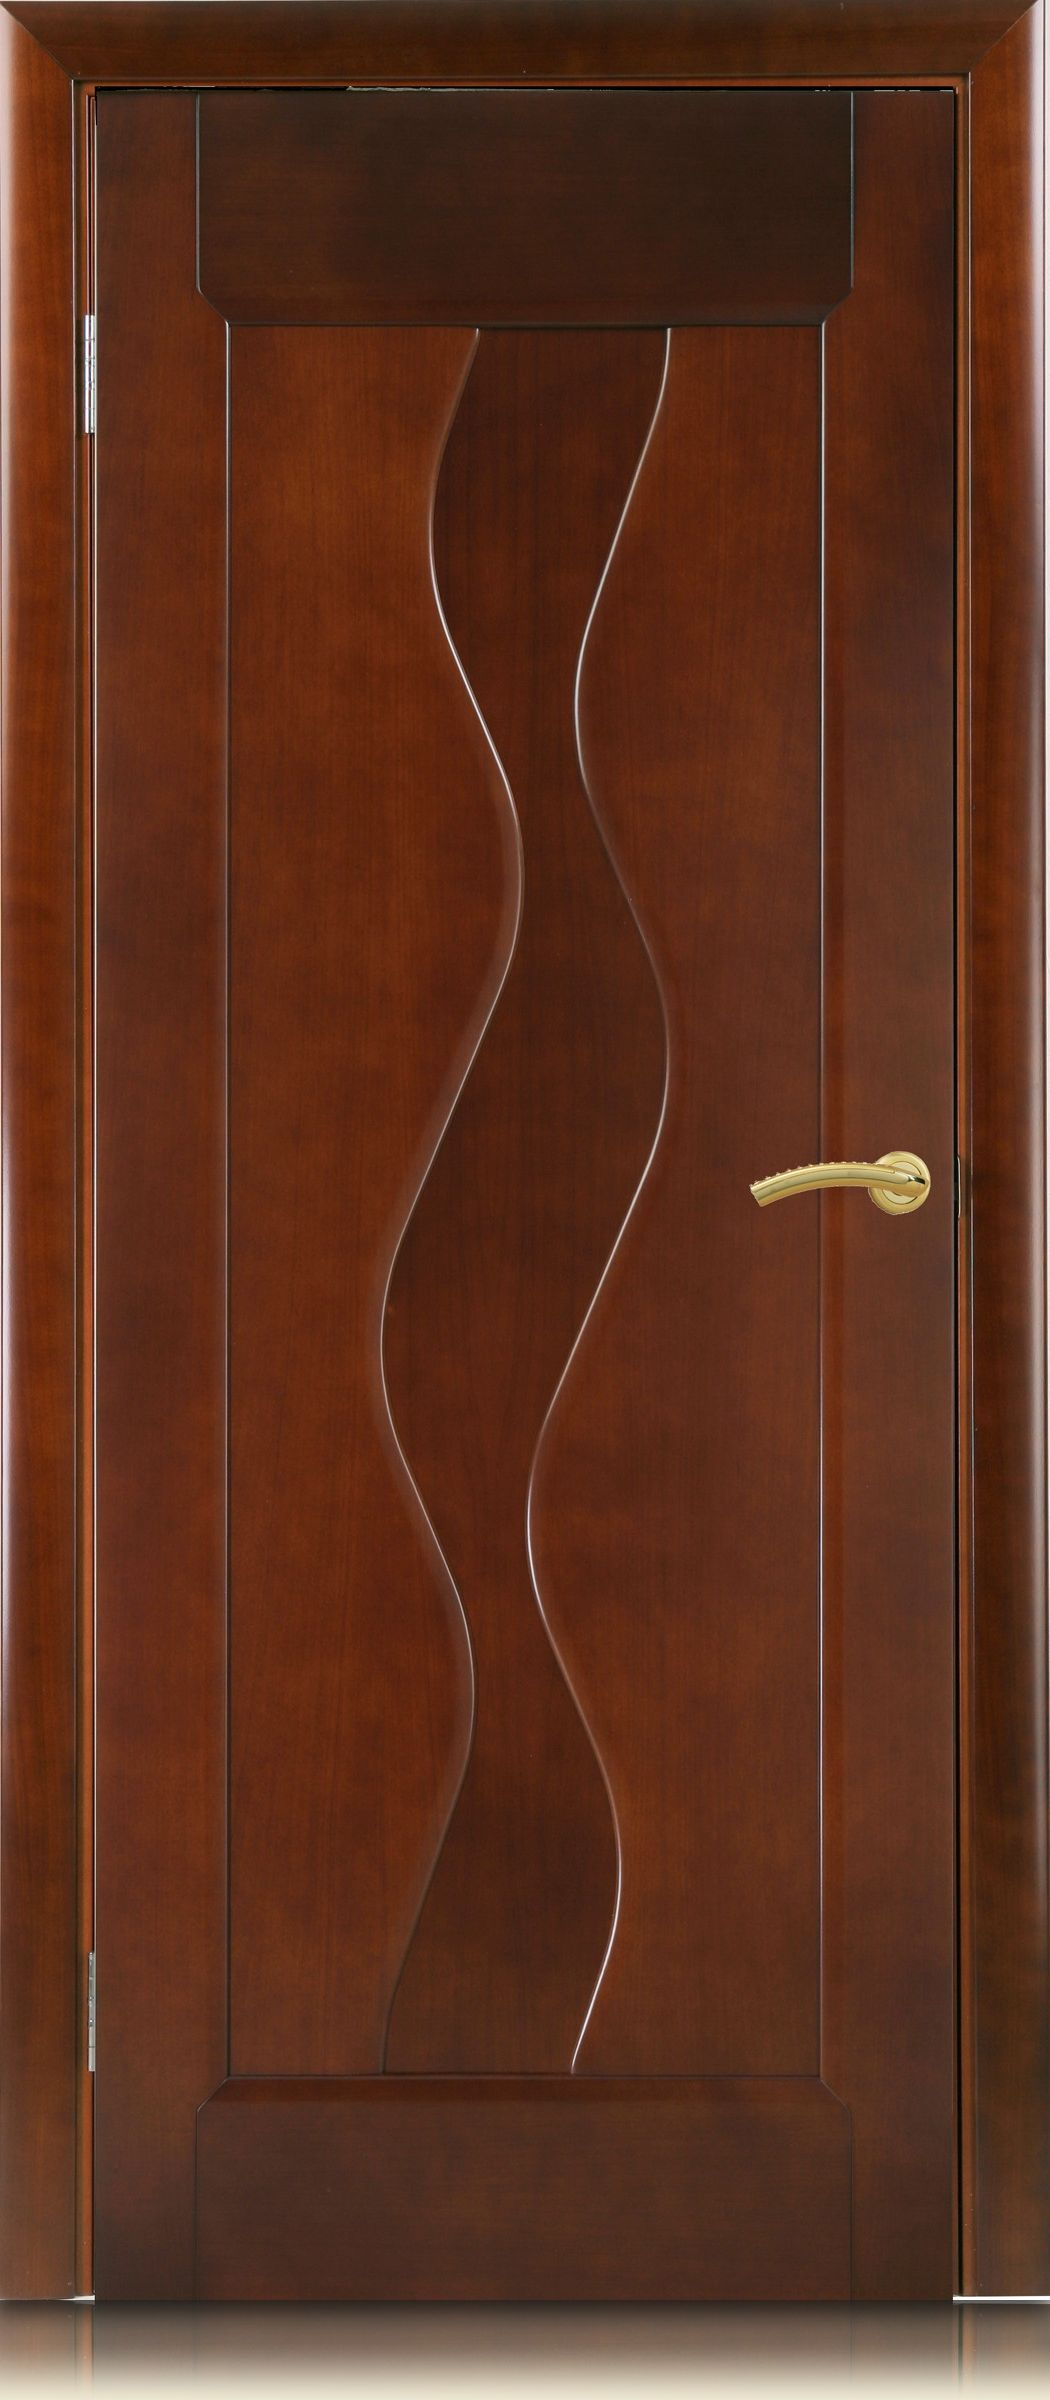 Beautiful wooden door – the perfect complement of the interior!